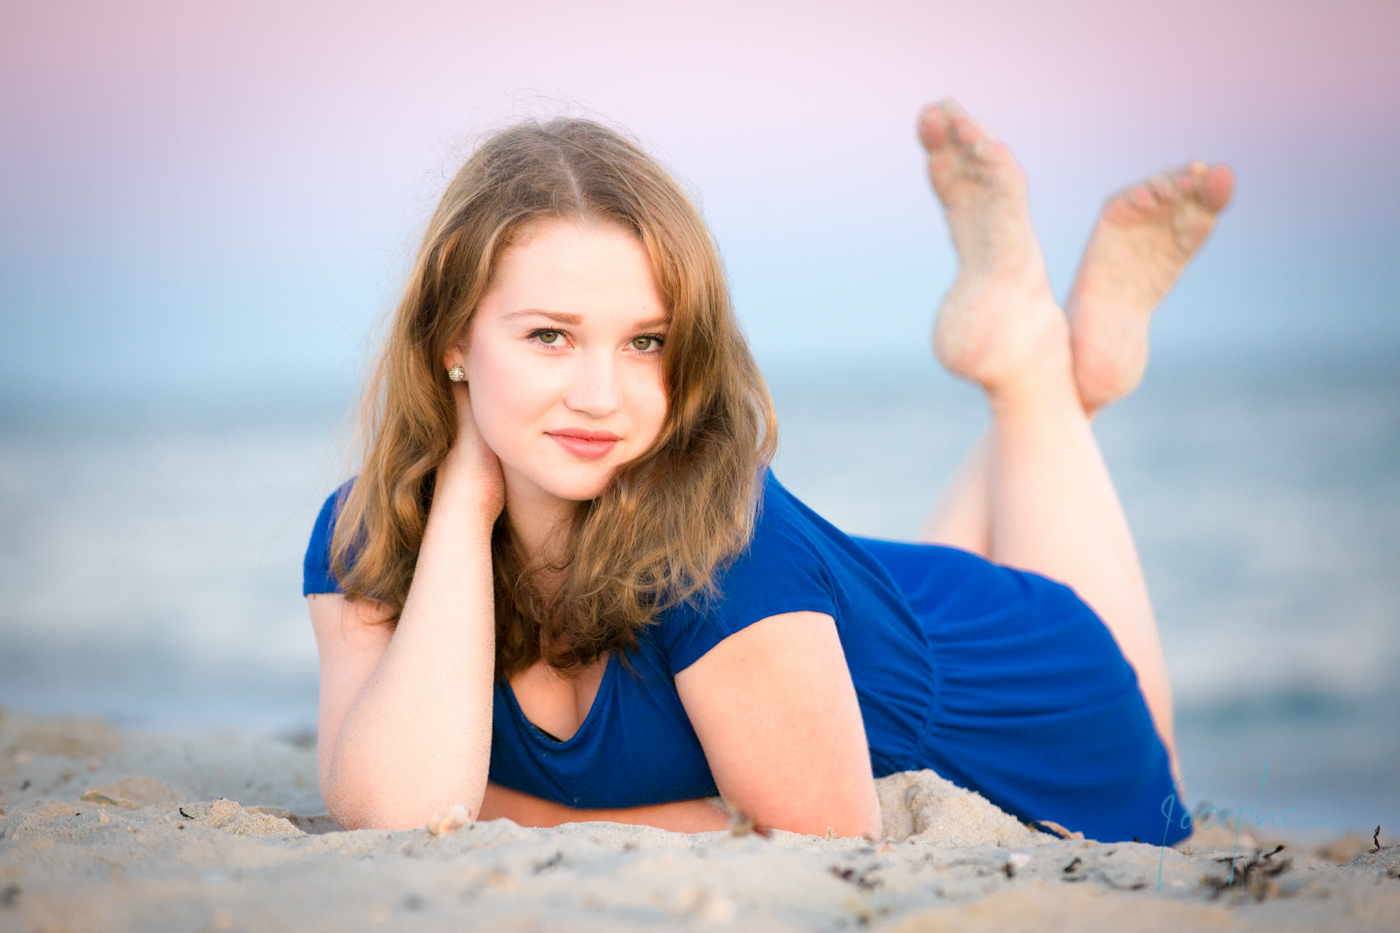 Beach - Includes up to 1 1/2 hours at the beach before dusk with 2 outfits and unlimited poses...$225 - Includes retouched yearbook file.Please feel free to use the Contact Button below for appointments or questions.